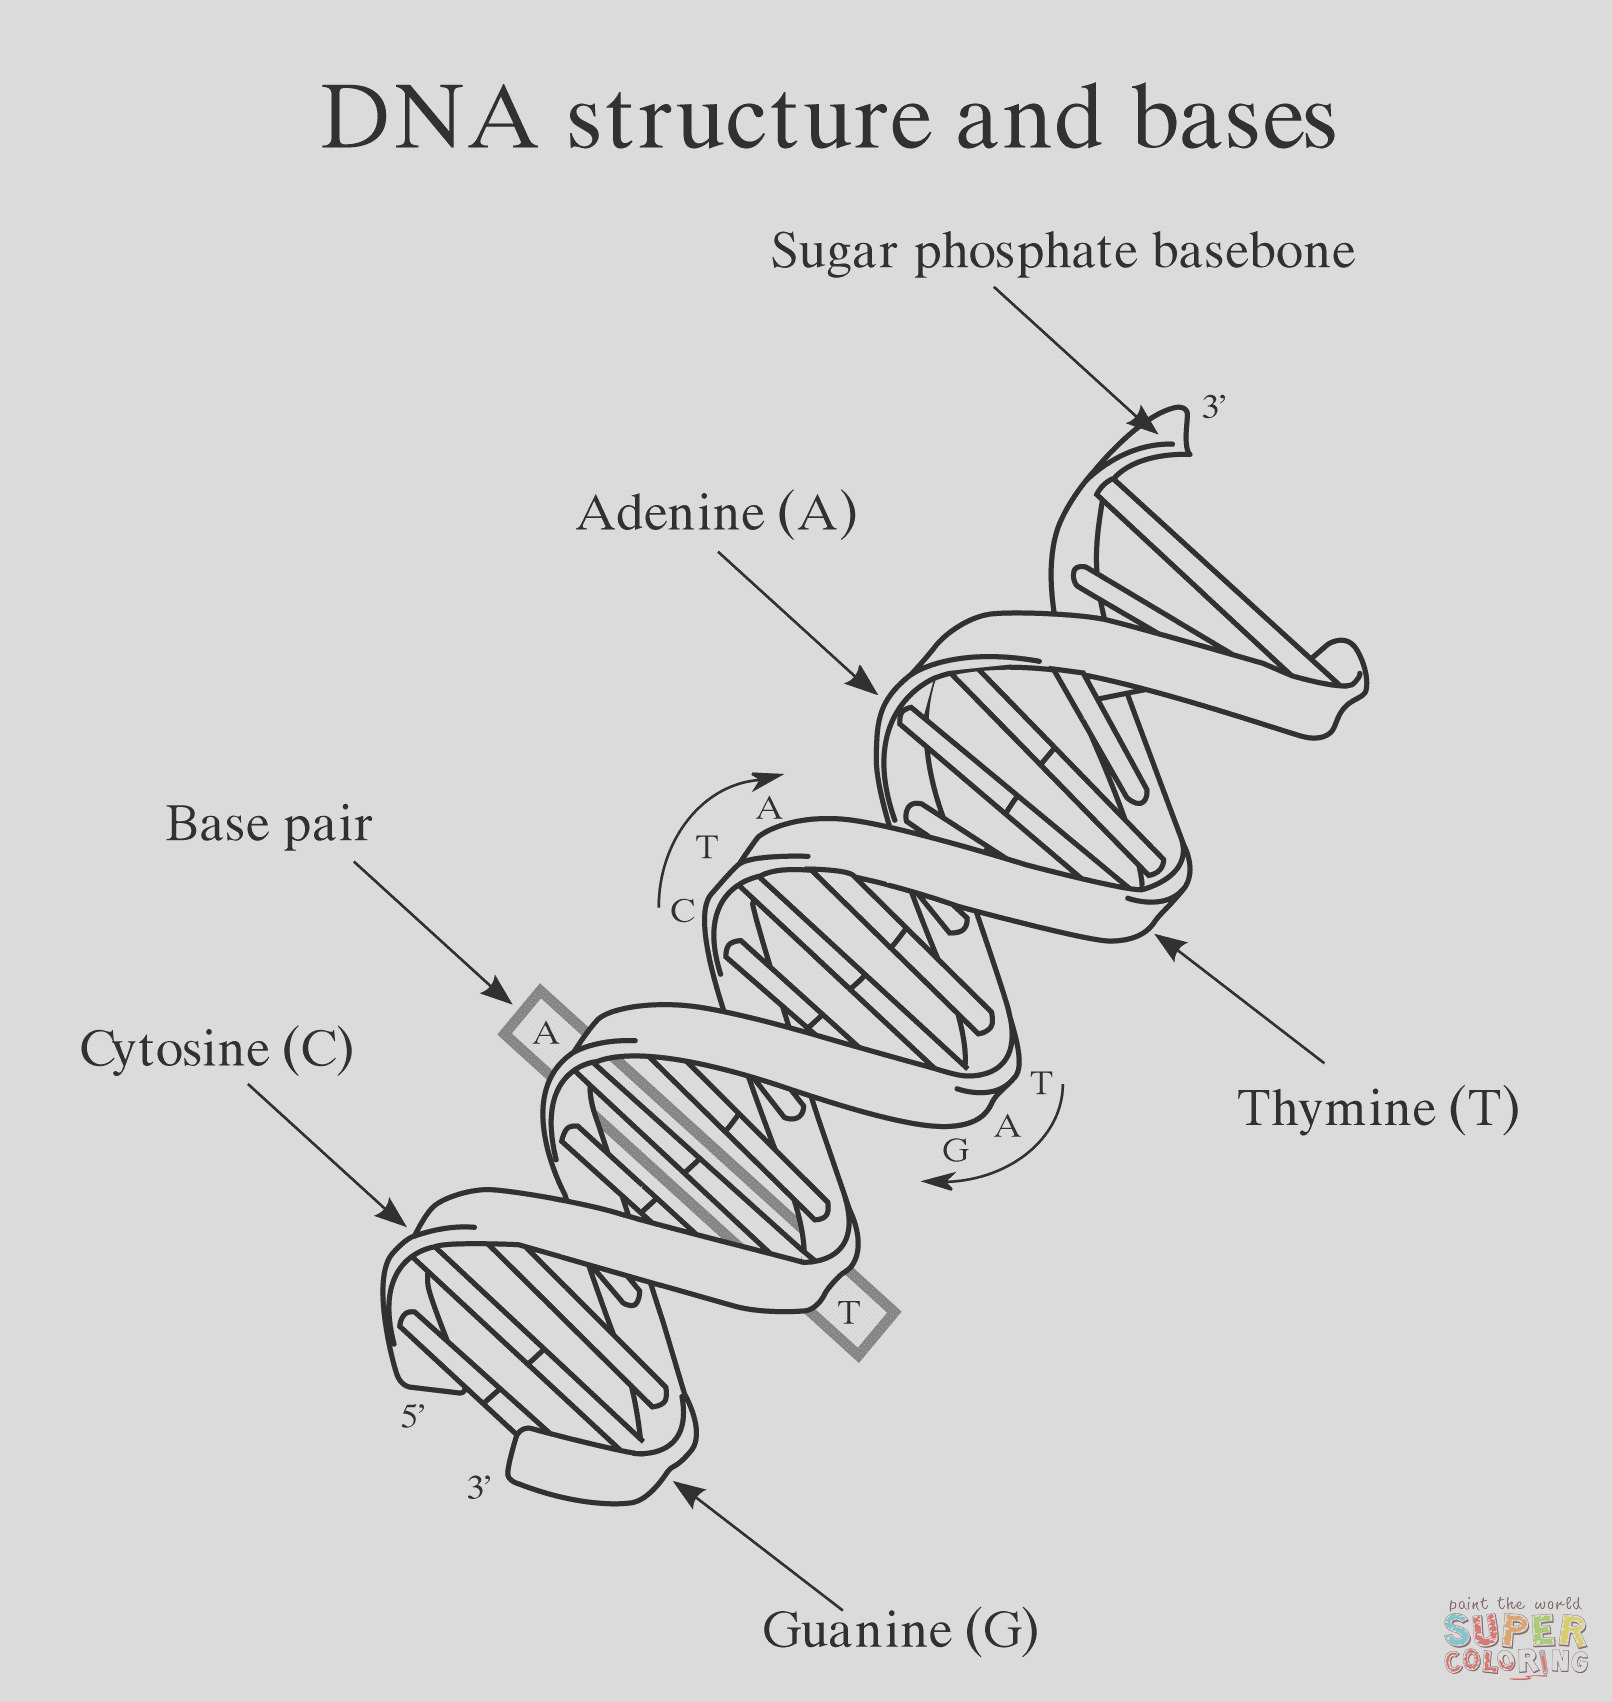 Why is it necessary for DNA replication to be continuous on one strand and in Okazaki fragments on the other